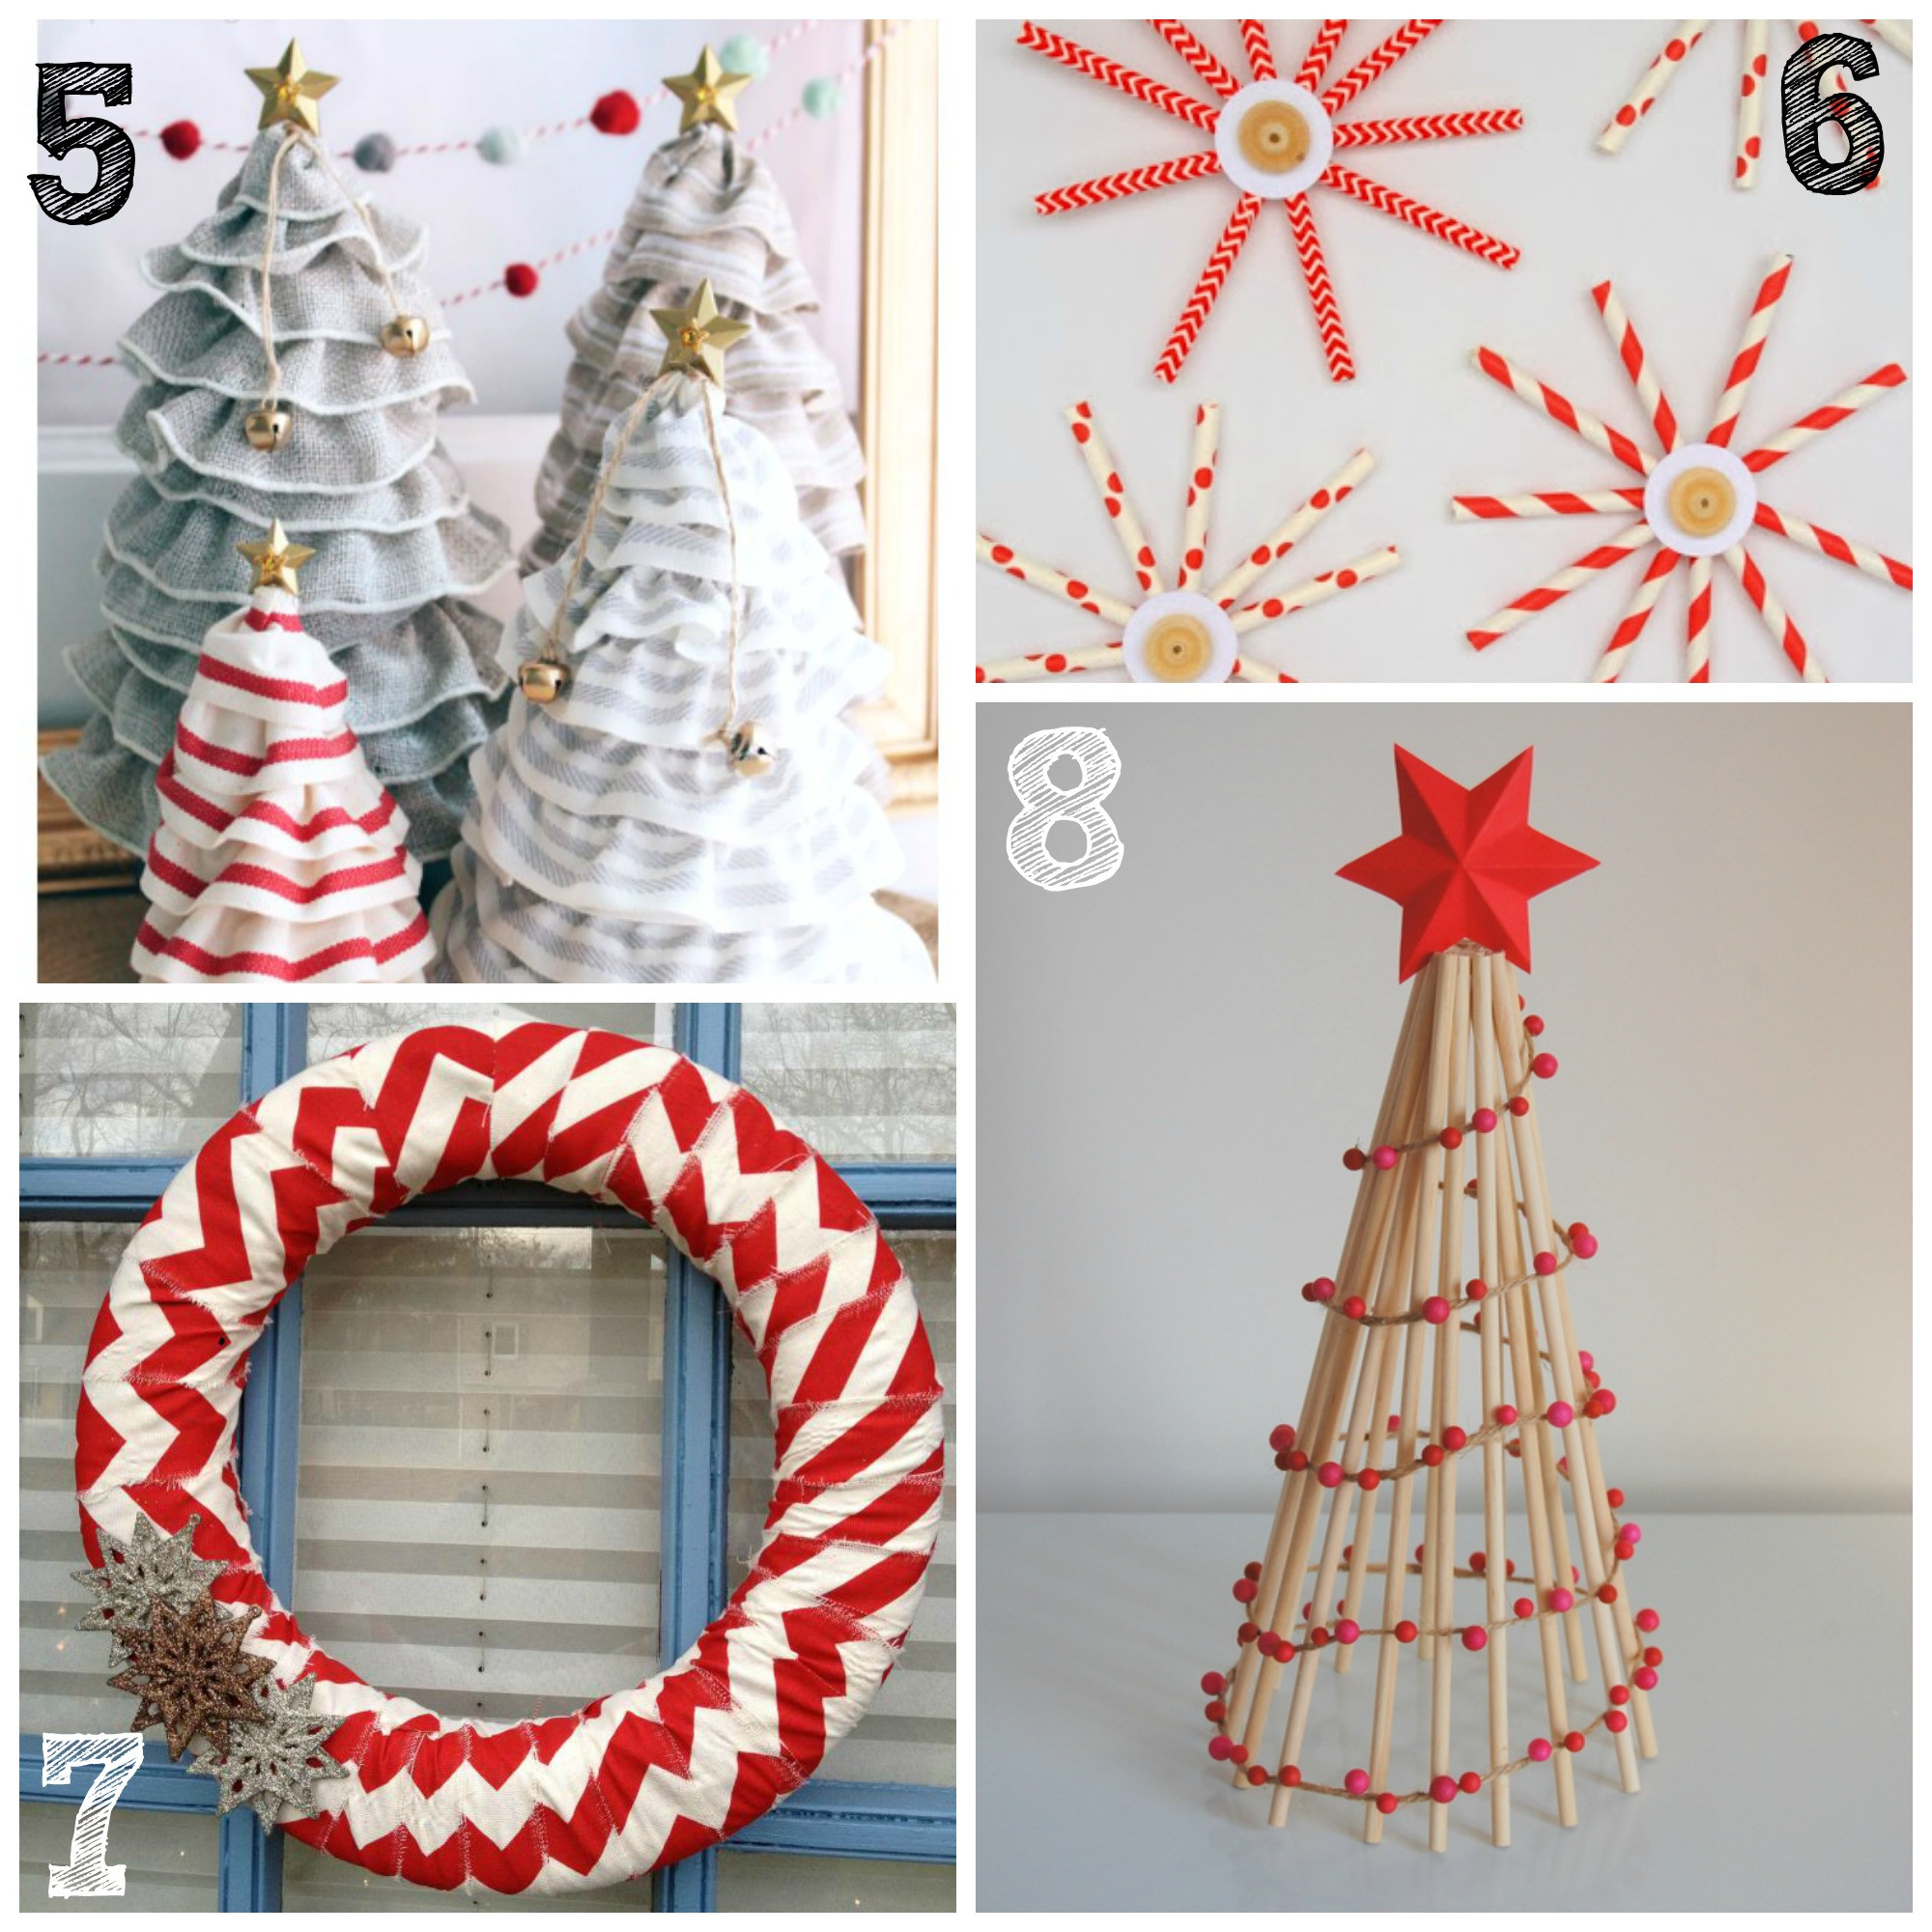 Best ideas about DIY Christmas Decor Ideas . Save or Pin CANT TAKE UR EYES OF THE BEAUTIFUL HANDMADE CHRISTMAS Now.